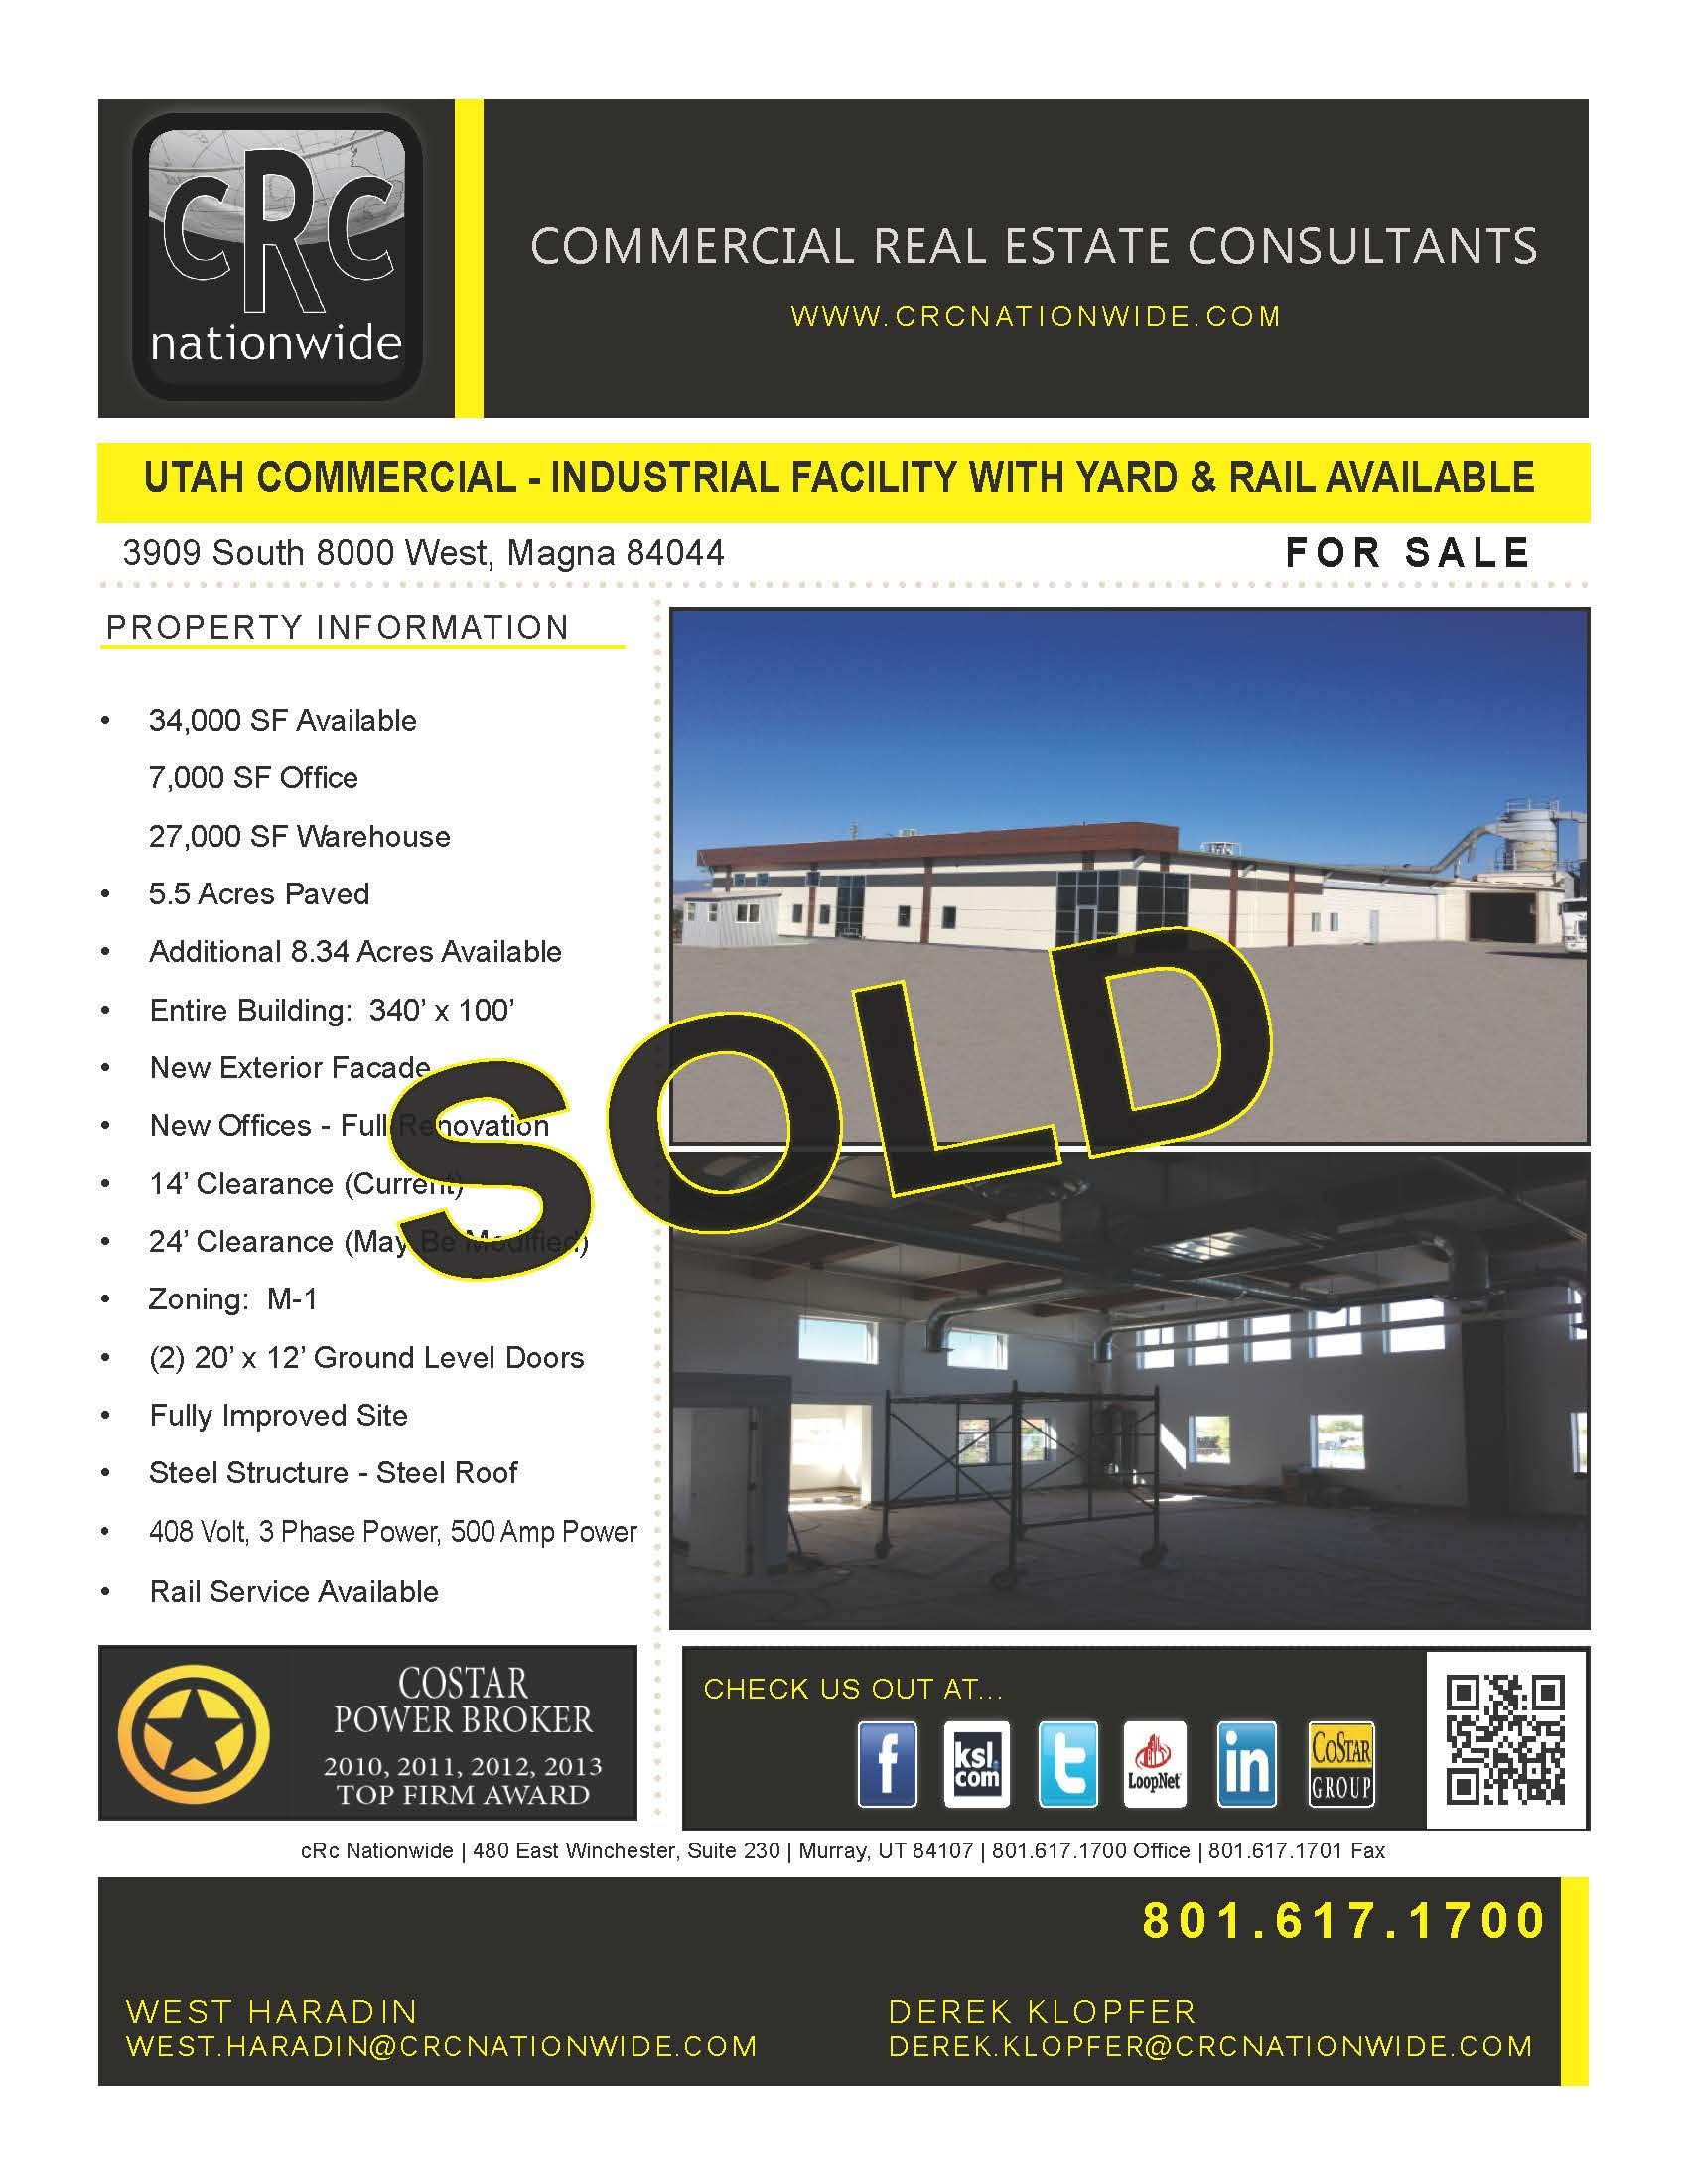 Sold Commercial Real Estate Facility Paving